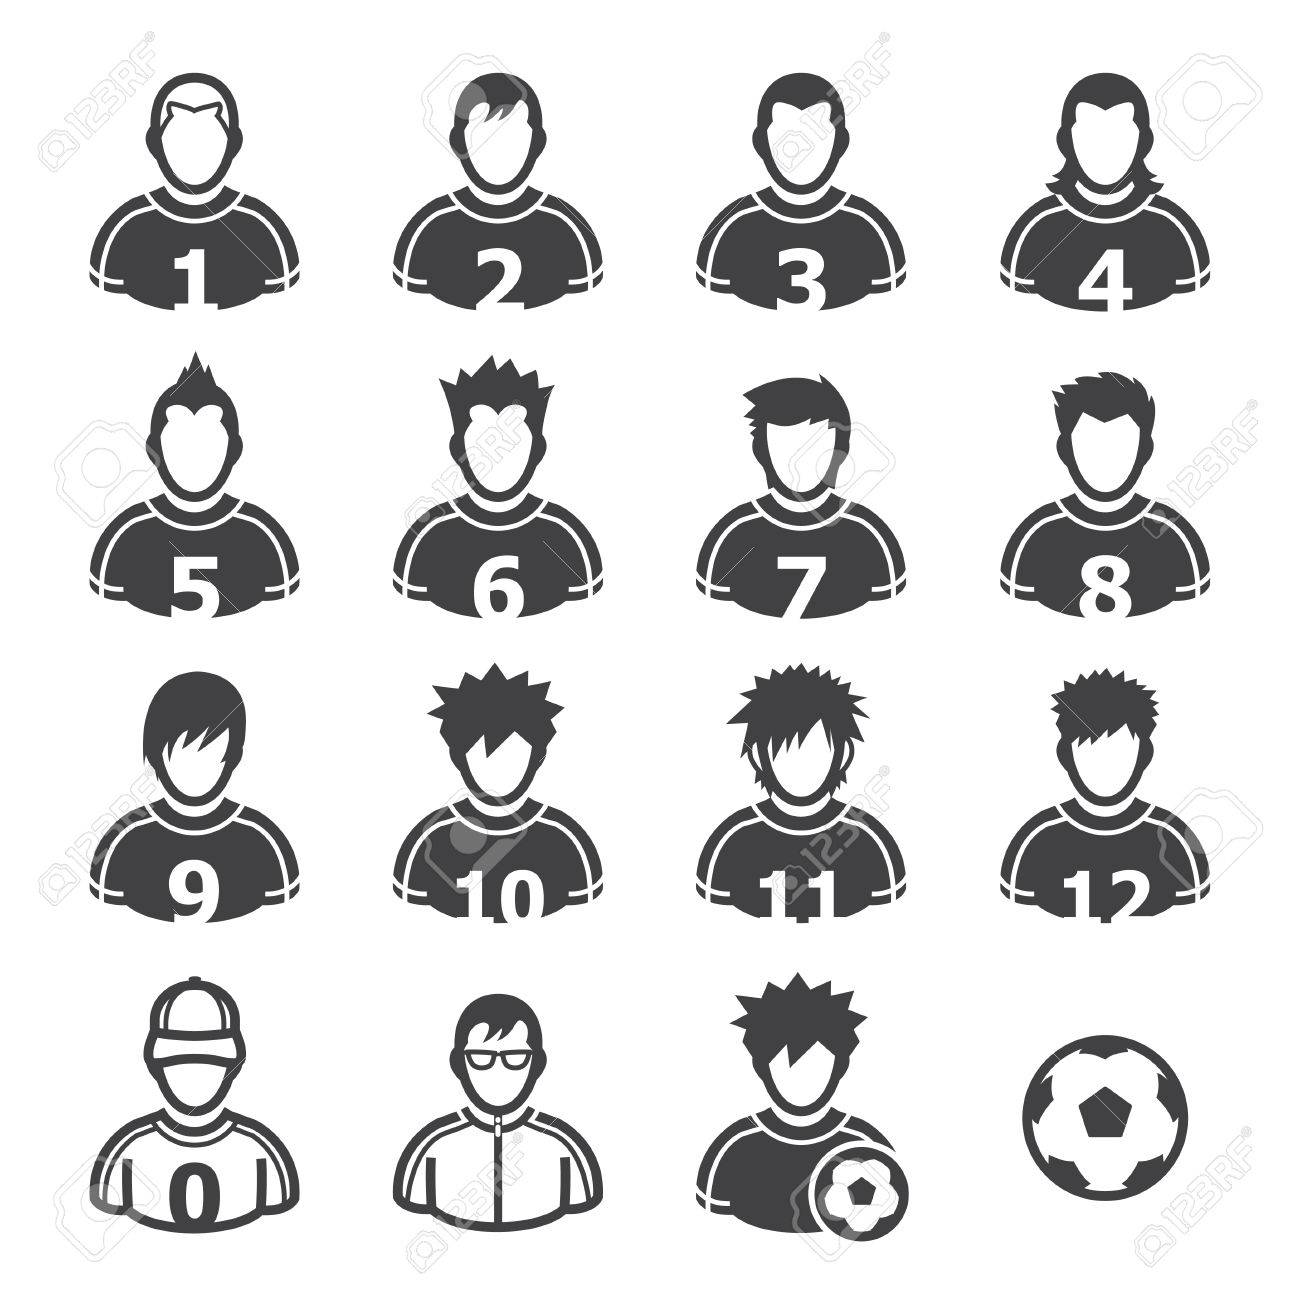 Soccer Player Icons with White Background - 22521874